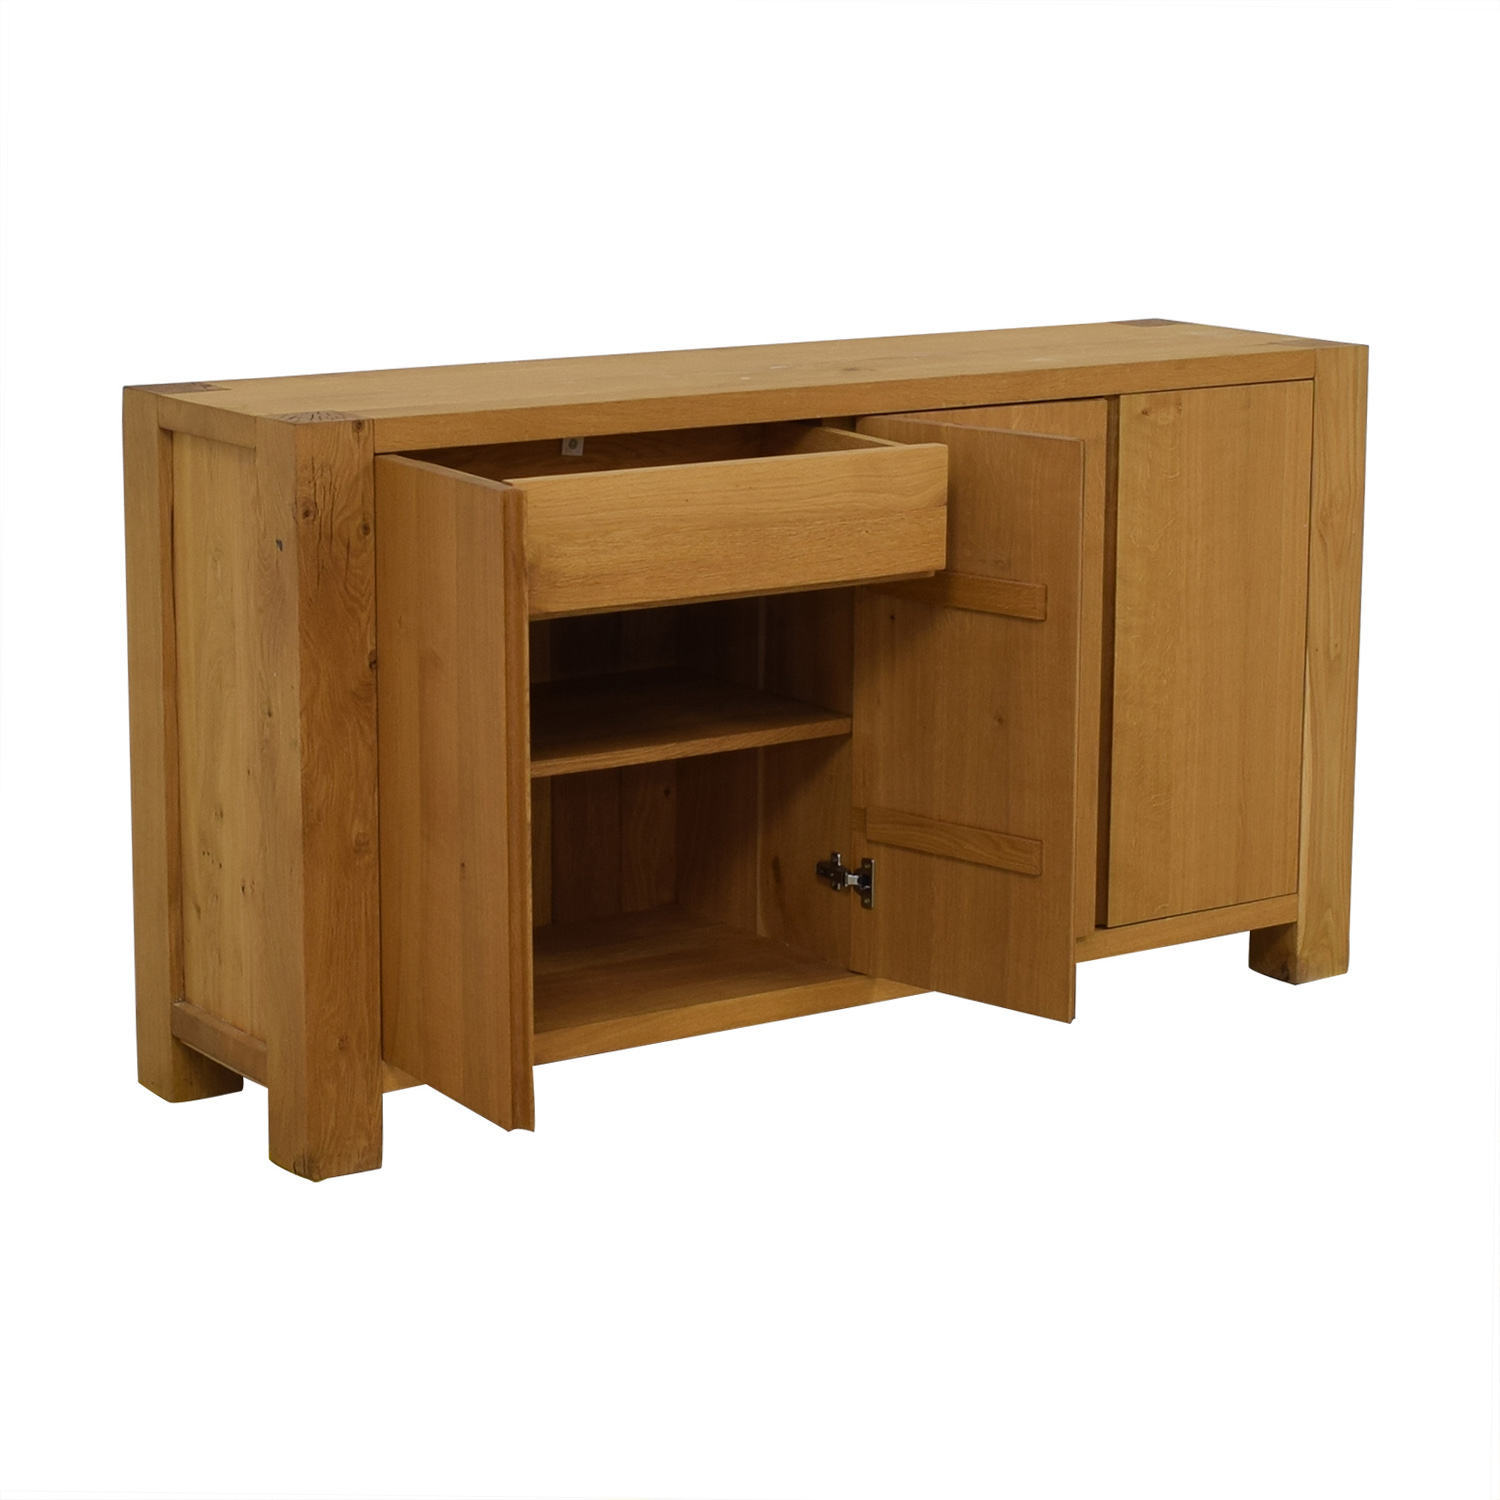 shop Crate & Barrel Big Sur Sideboard Crate & Barrel Cabinets & Sideboards